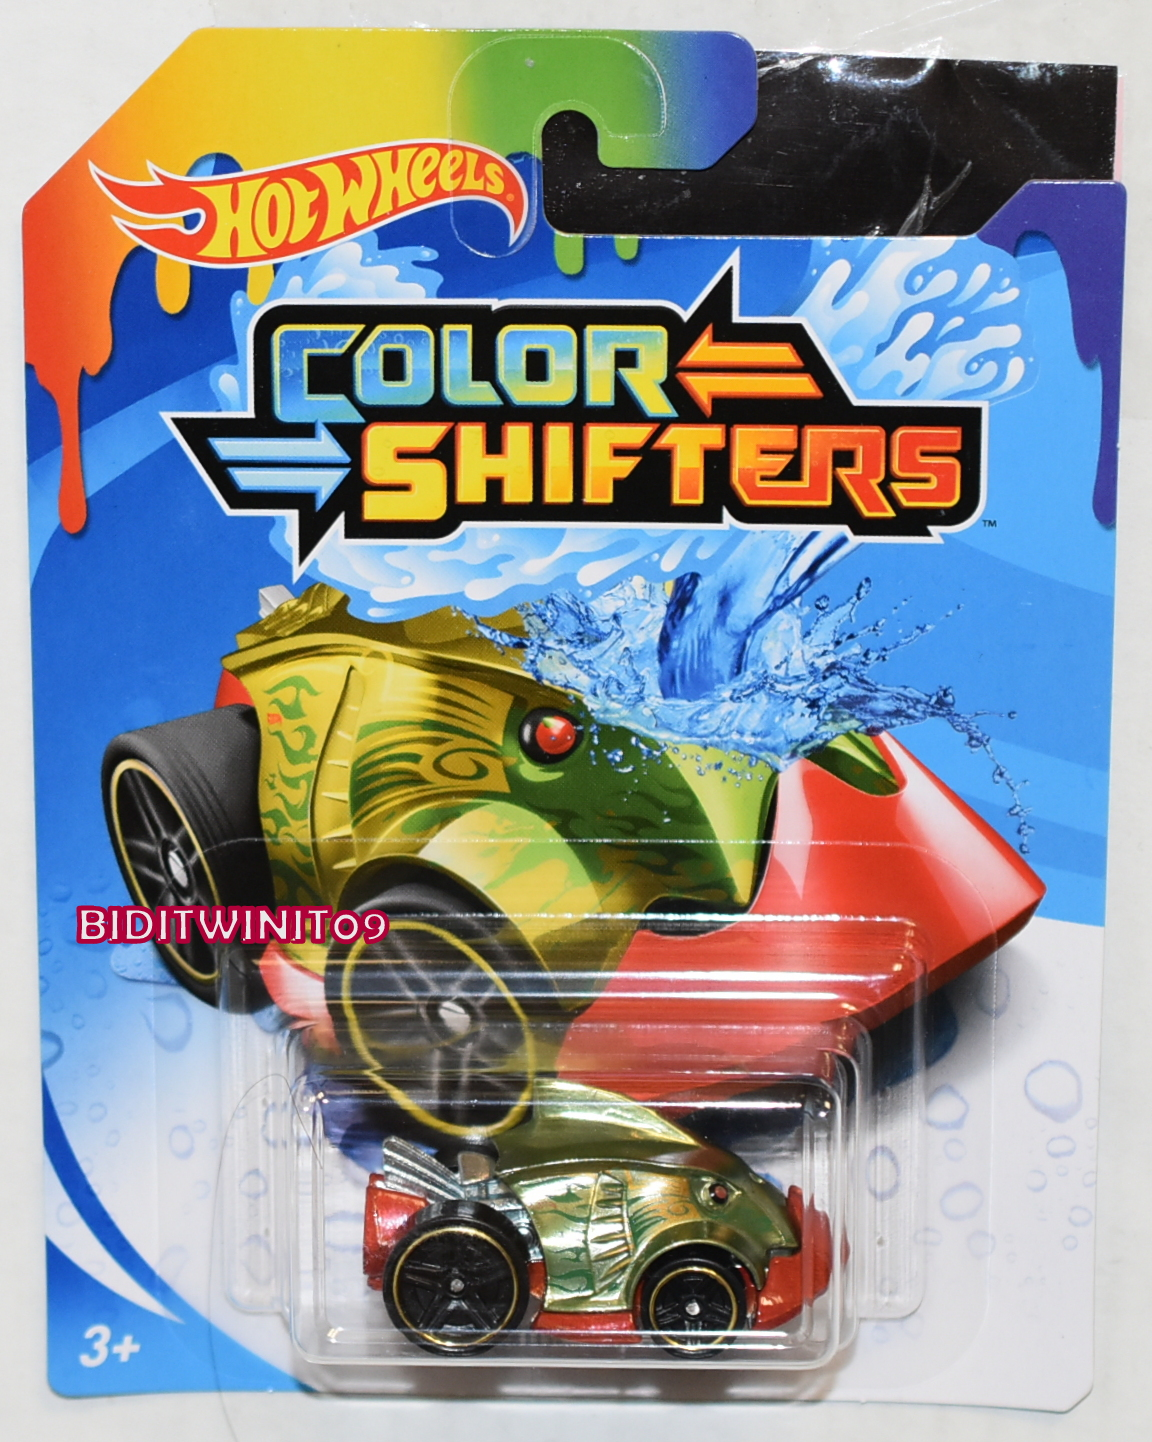 HOT WHEELS 2020 COLOR SHIFTERS PIRANHA TERROR E+